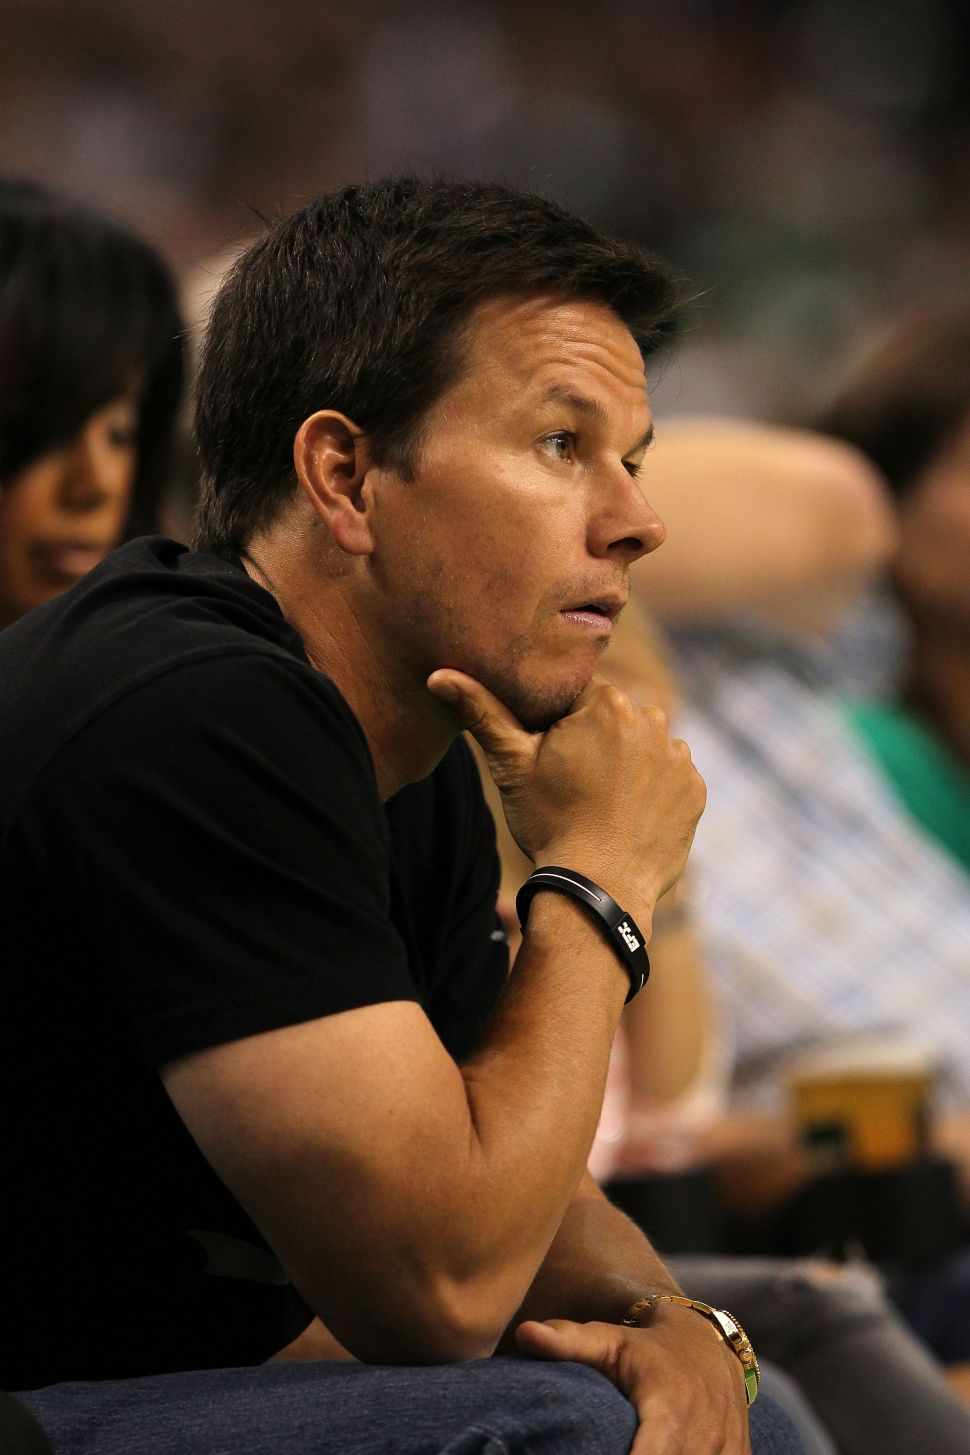 Mark Wahlberg's Punishment for 9/11 Comments: Helping with the 9/11 Memorial Museum?